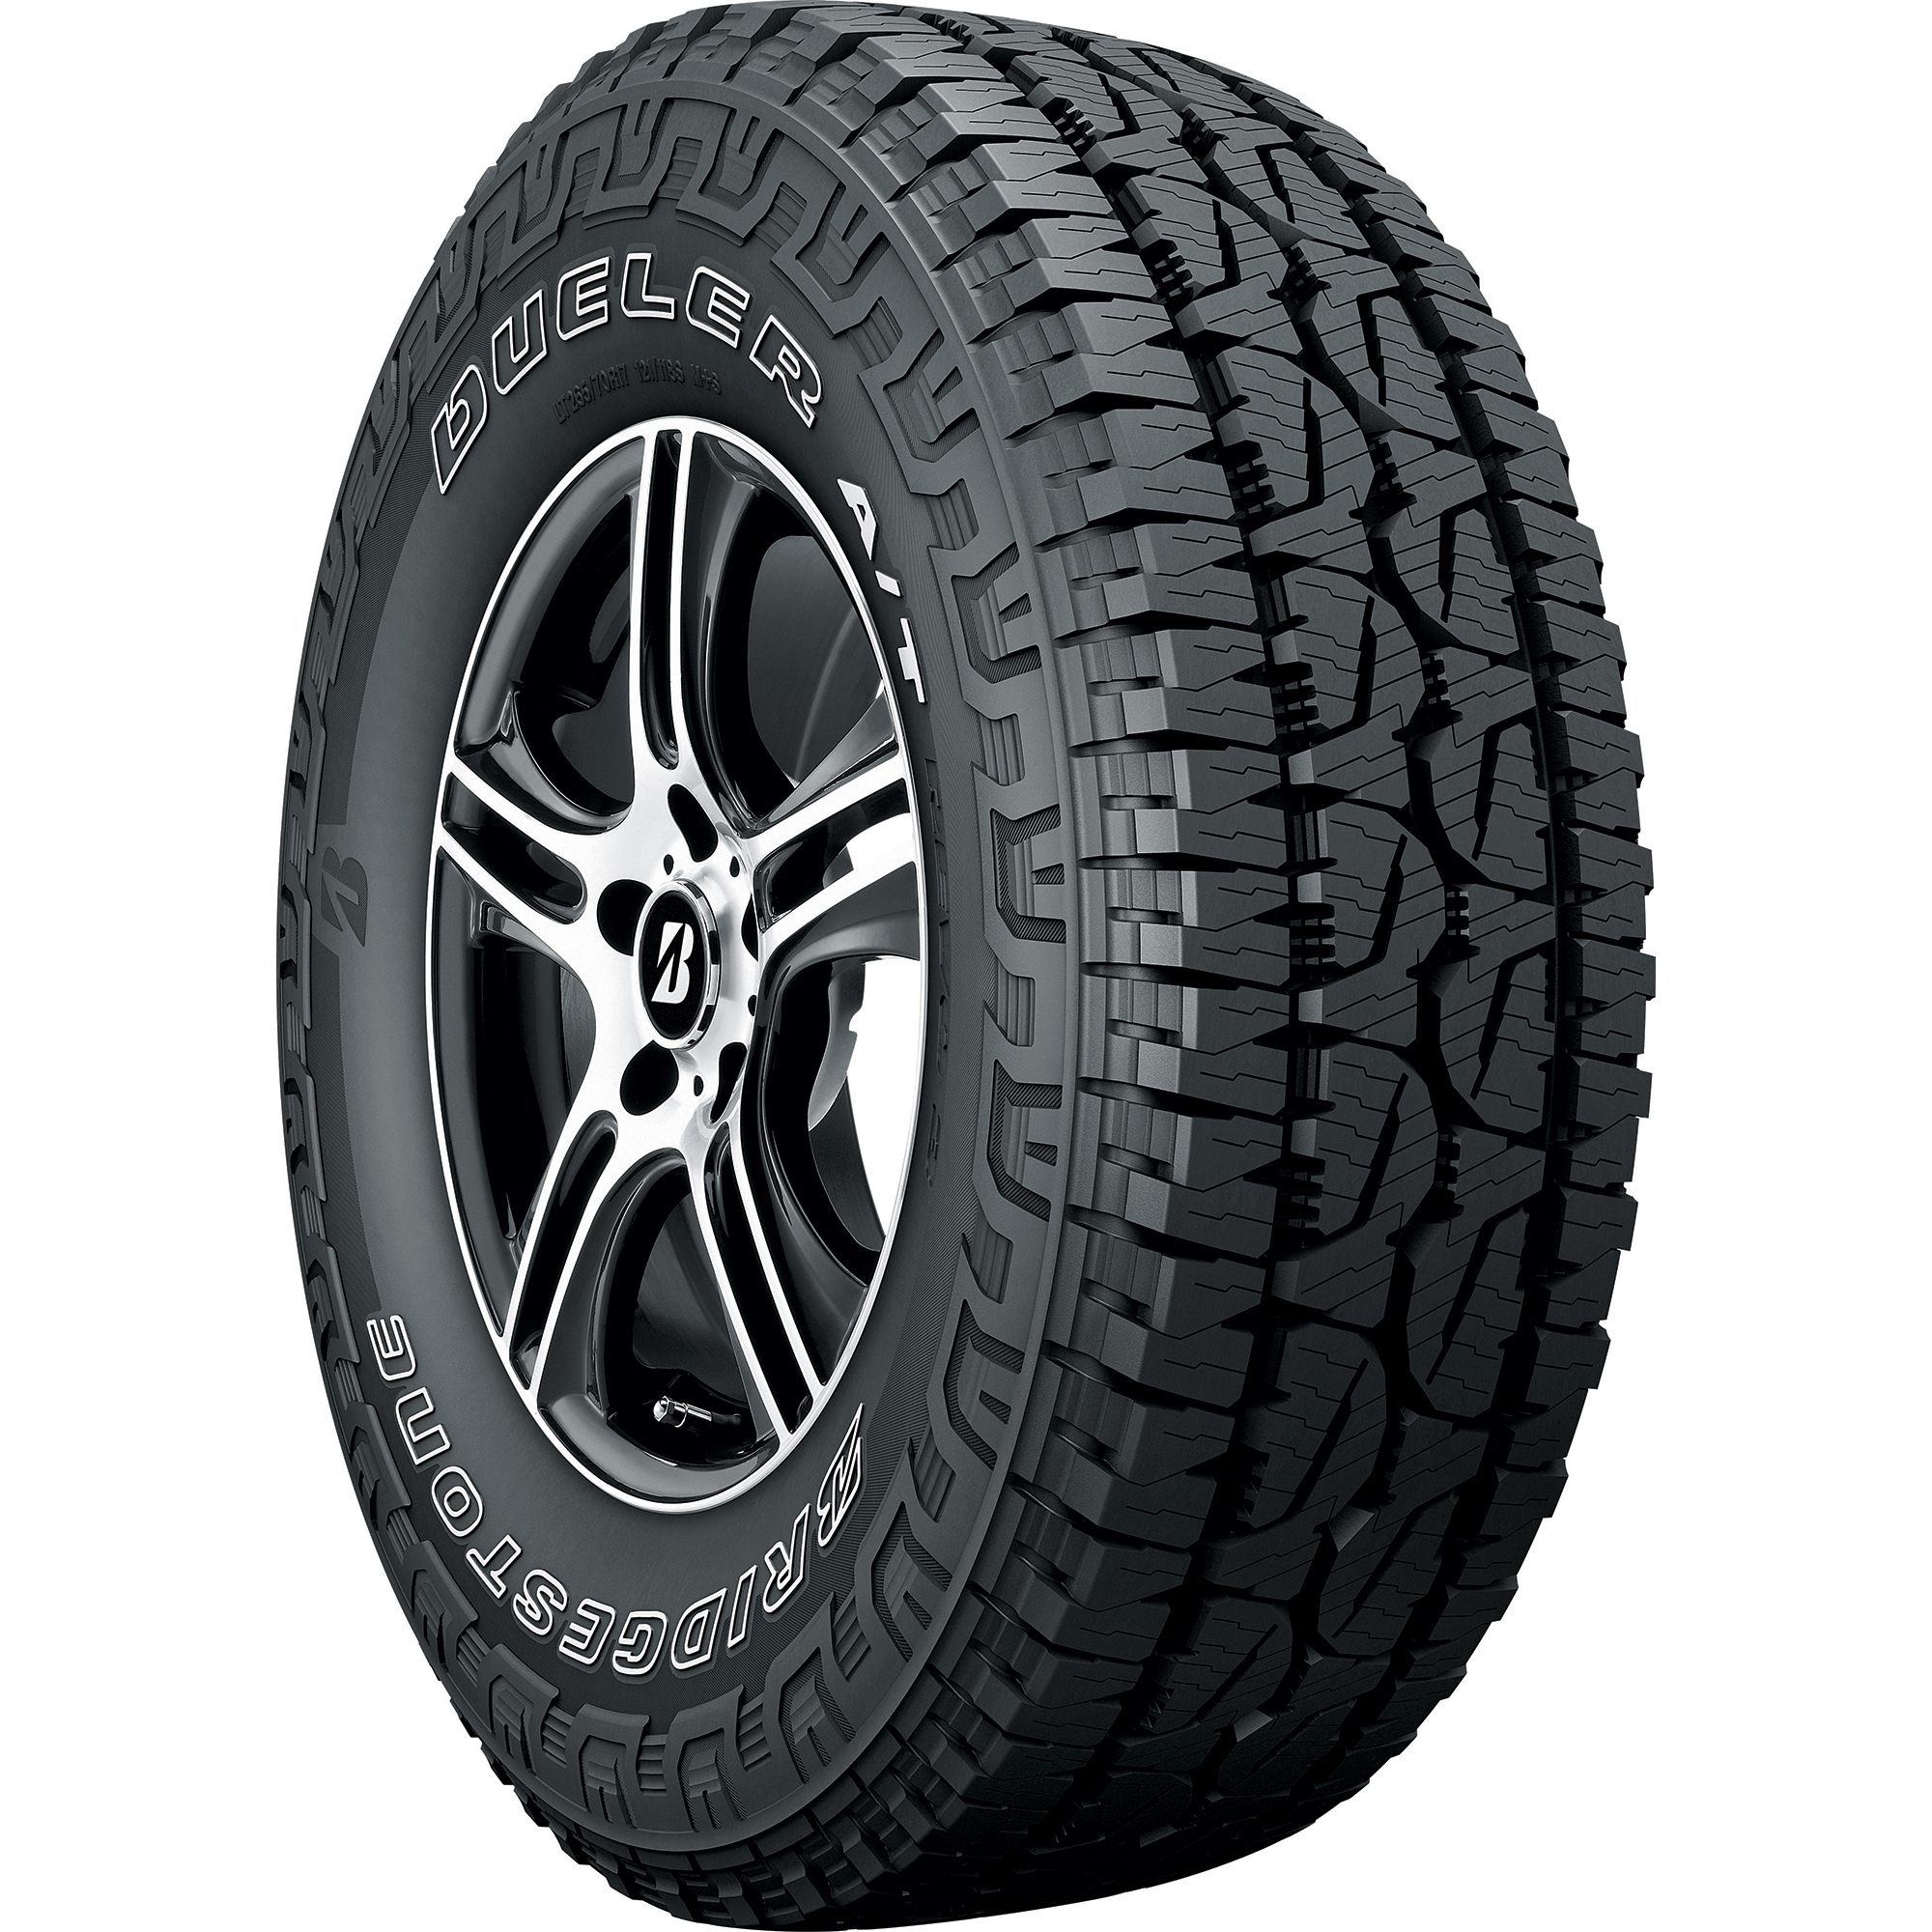 Bridgestone Tire Deals >> Bridgestone Dueler A/T REVO 3 | TireBuyer